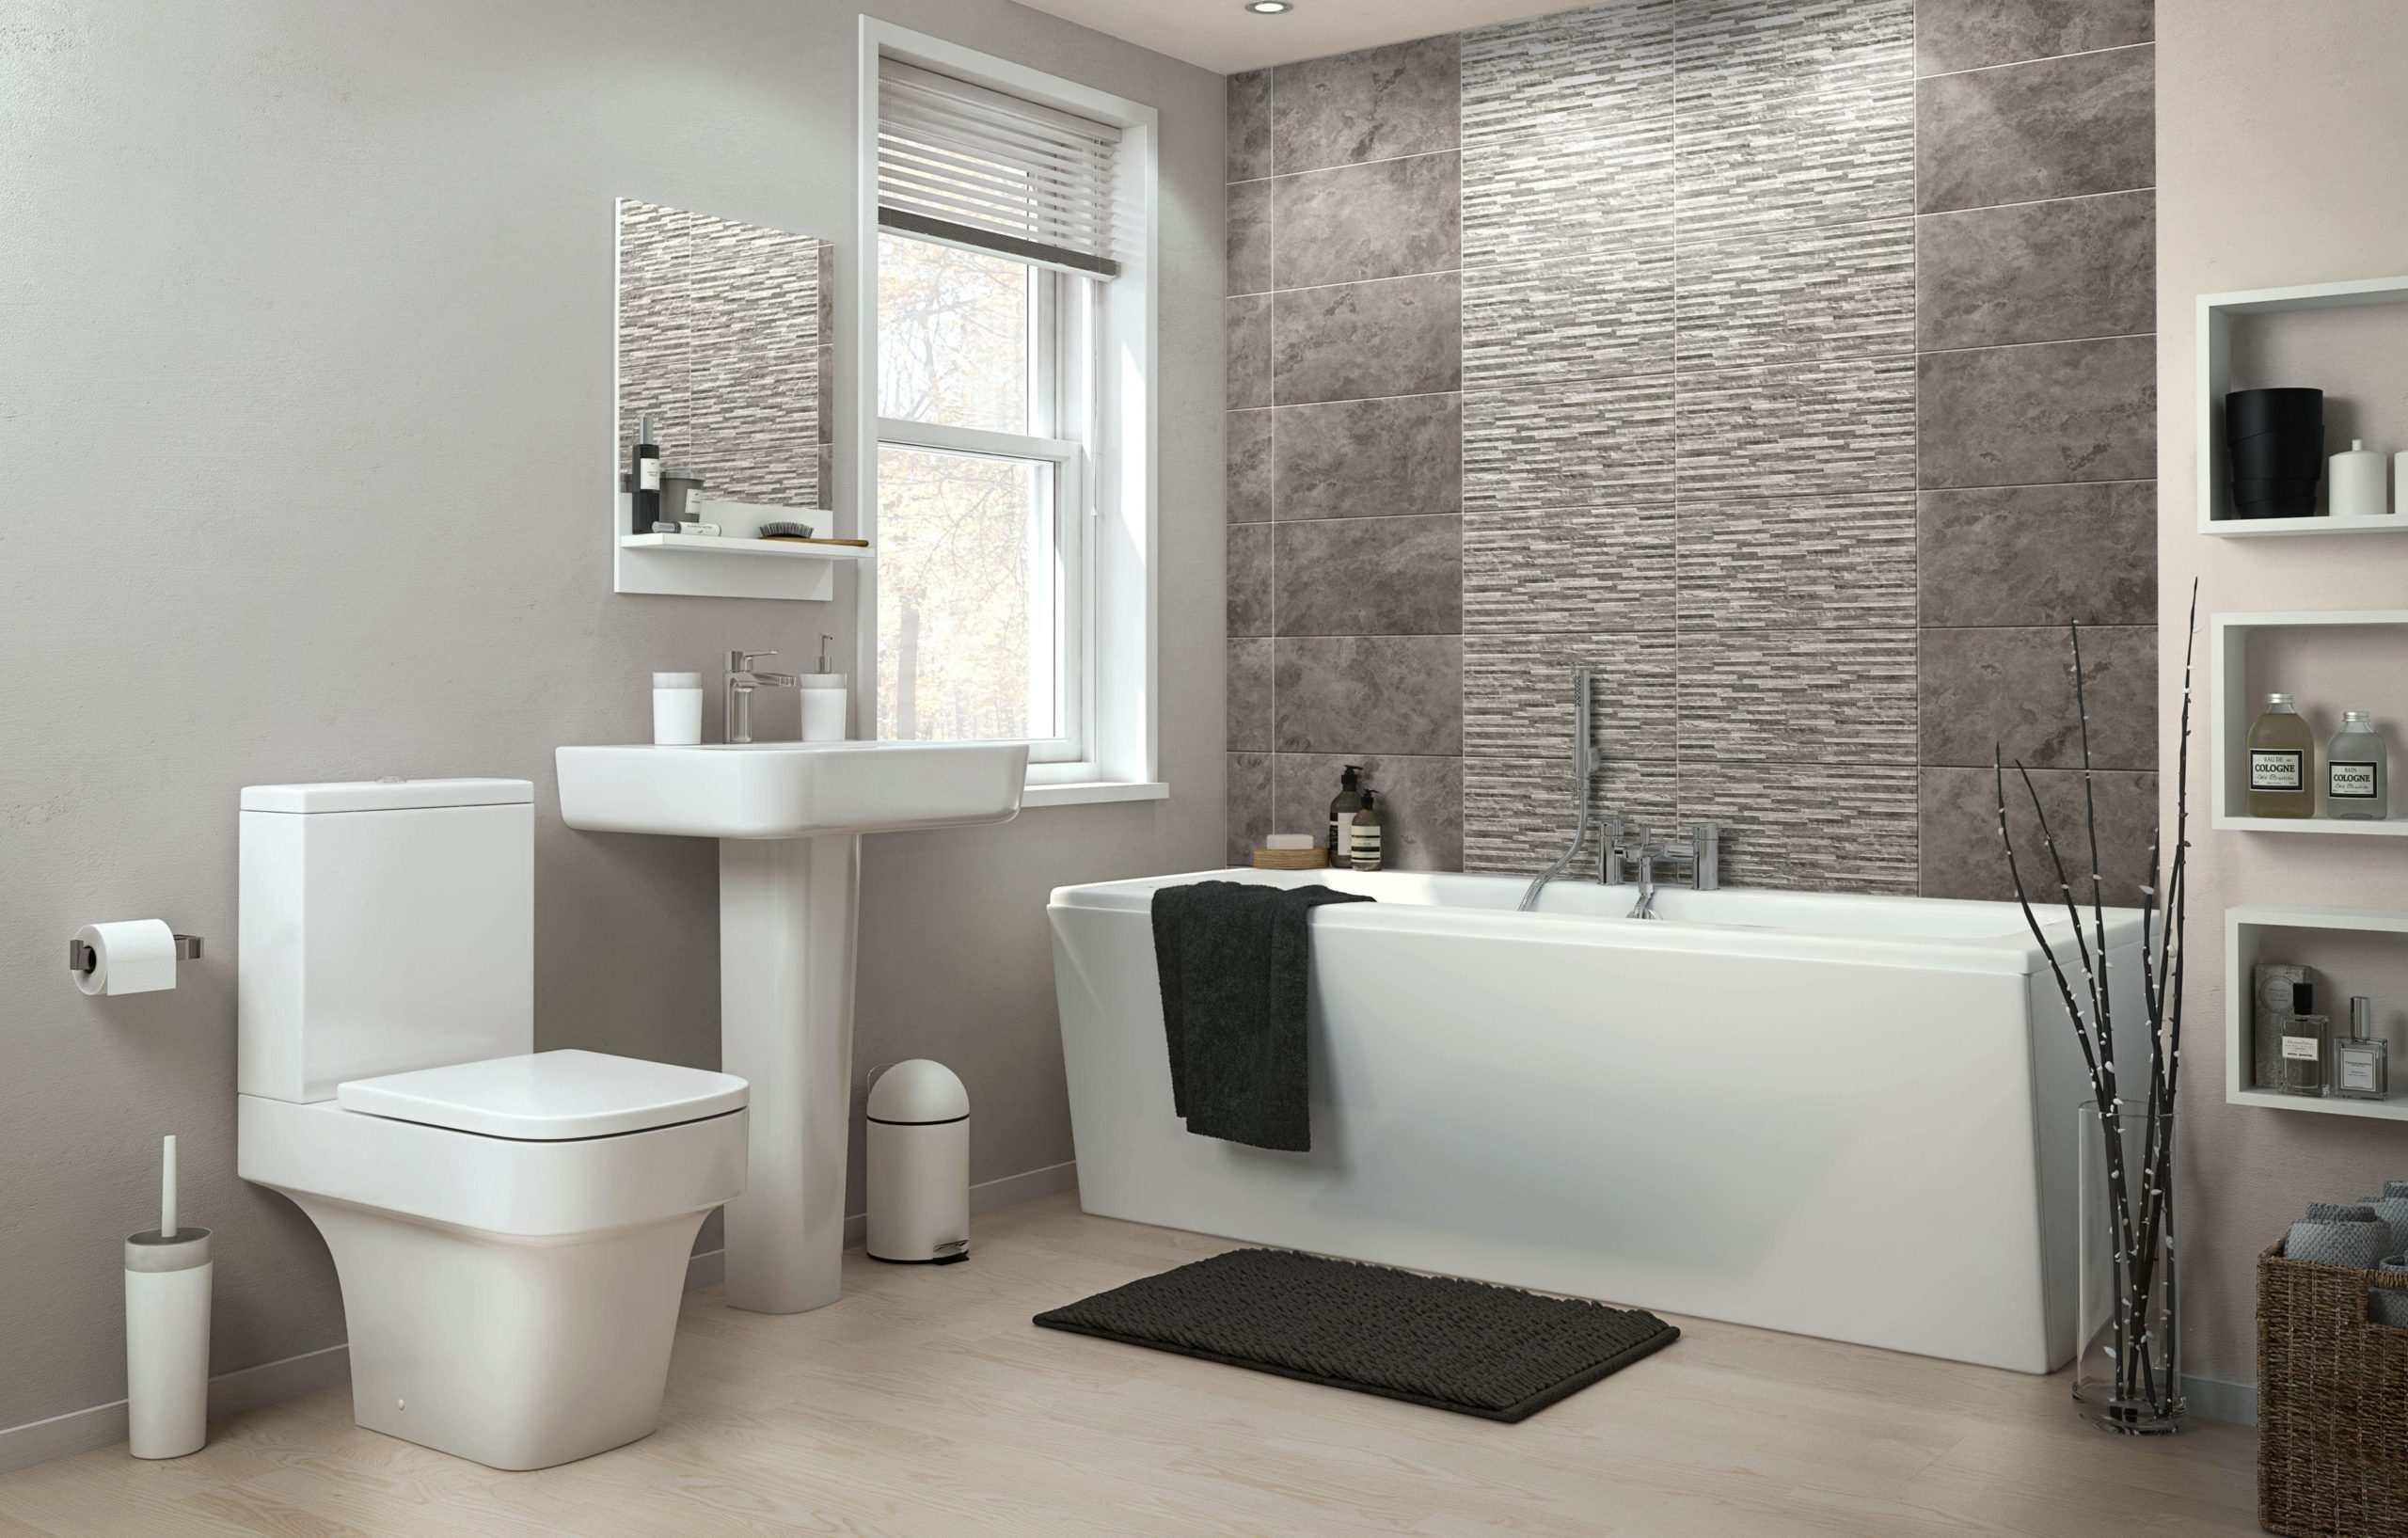 4 Tips to Keep your Bathroom Looking New